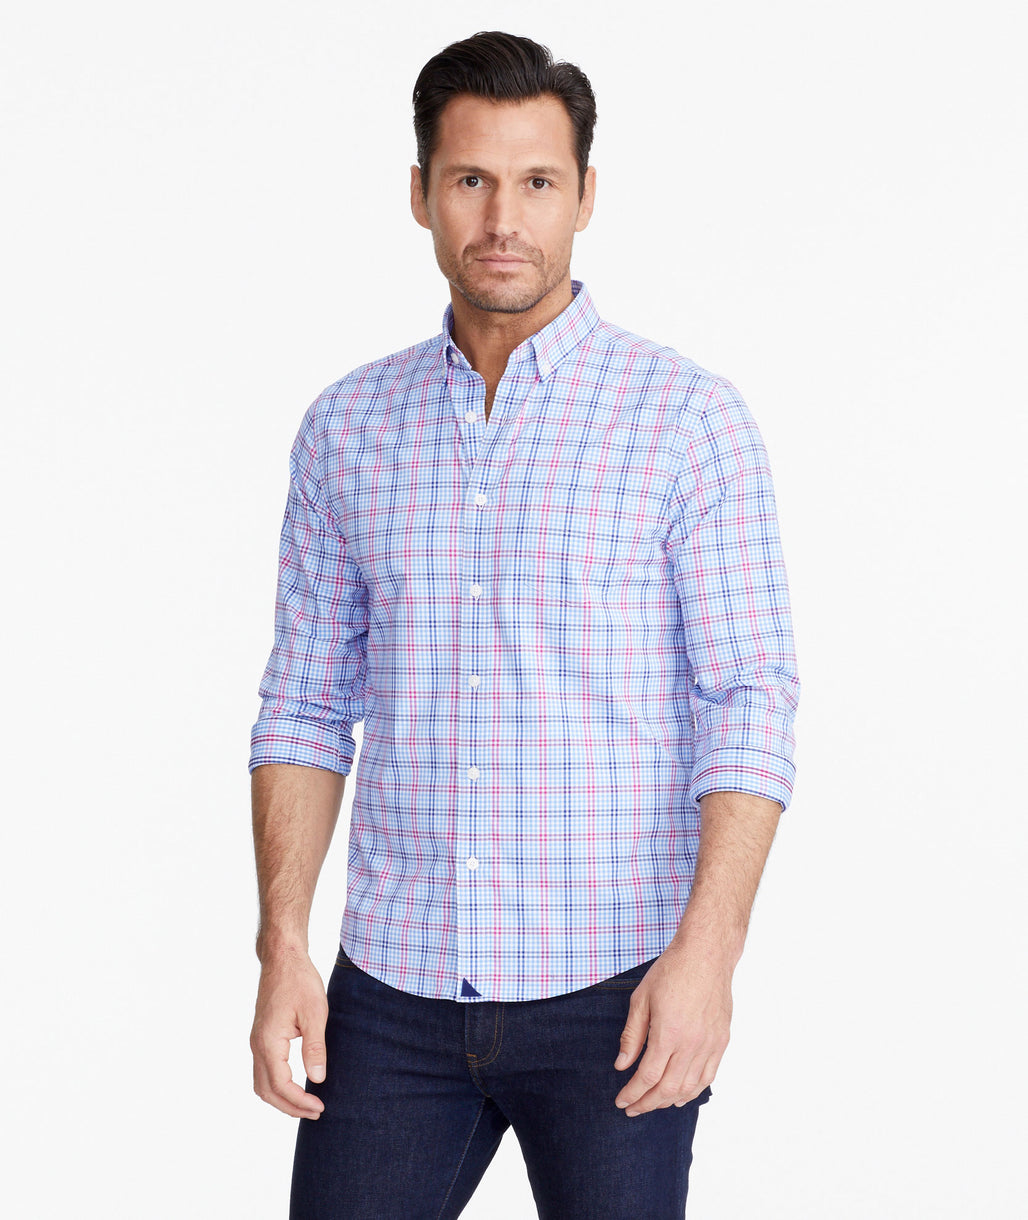 Model wearing a Light Blue Wrinkle-Free Performance+ Scansano Shirt